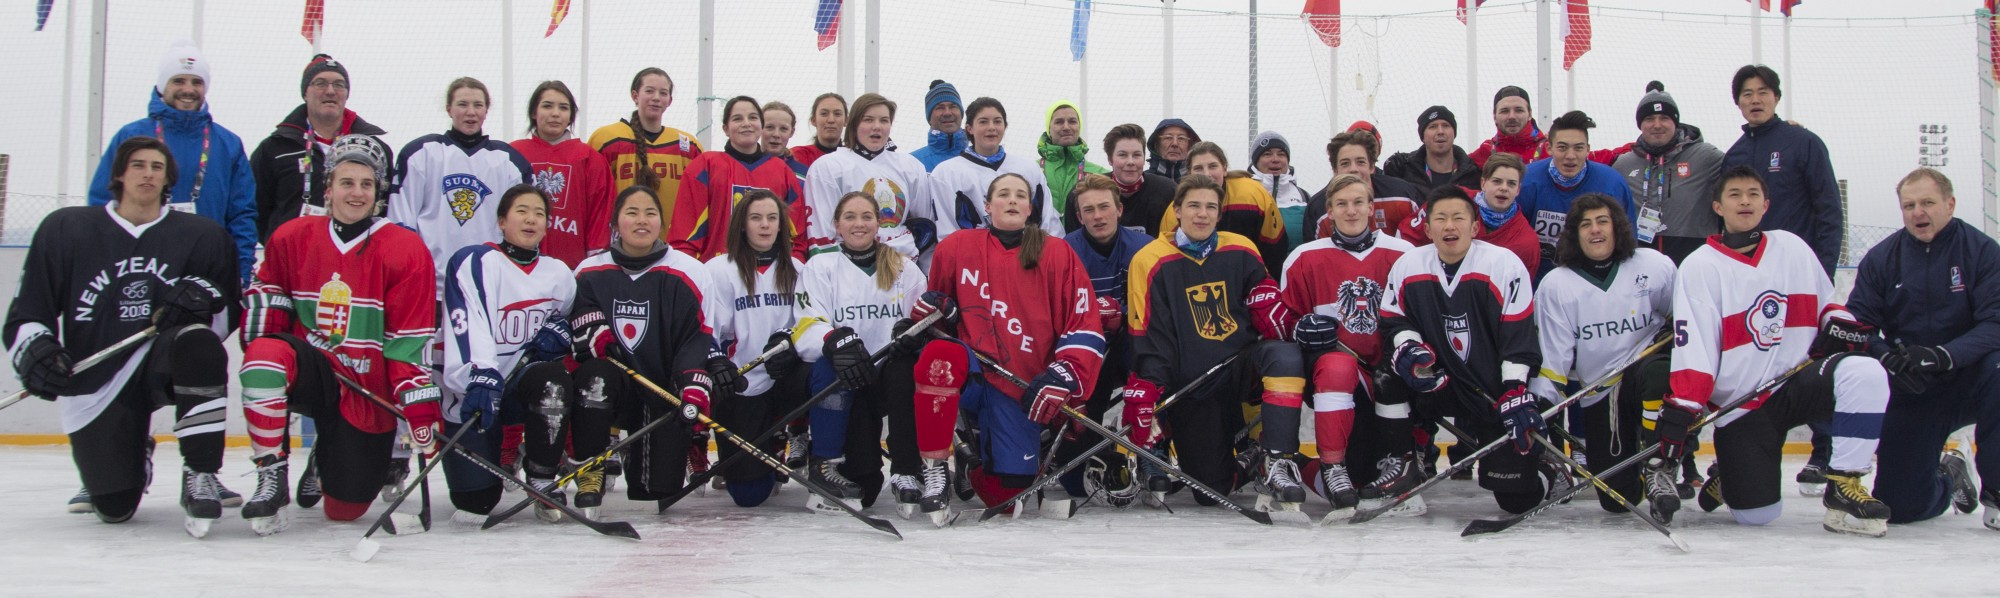 More than 20 nations played together in a friendly outdoor game at the  Youth Olympic Games in Lillehammer, Norway. (Vegard Anders Skorpen/ IOC  Young ...